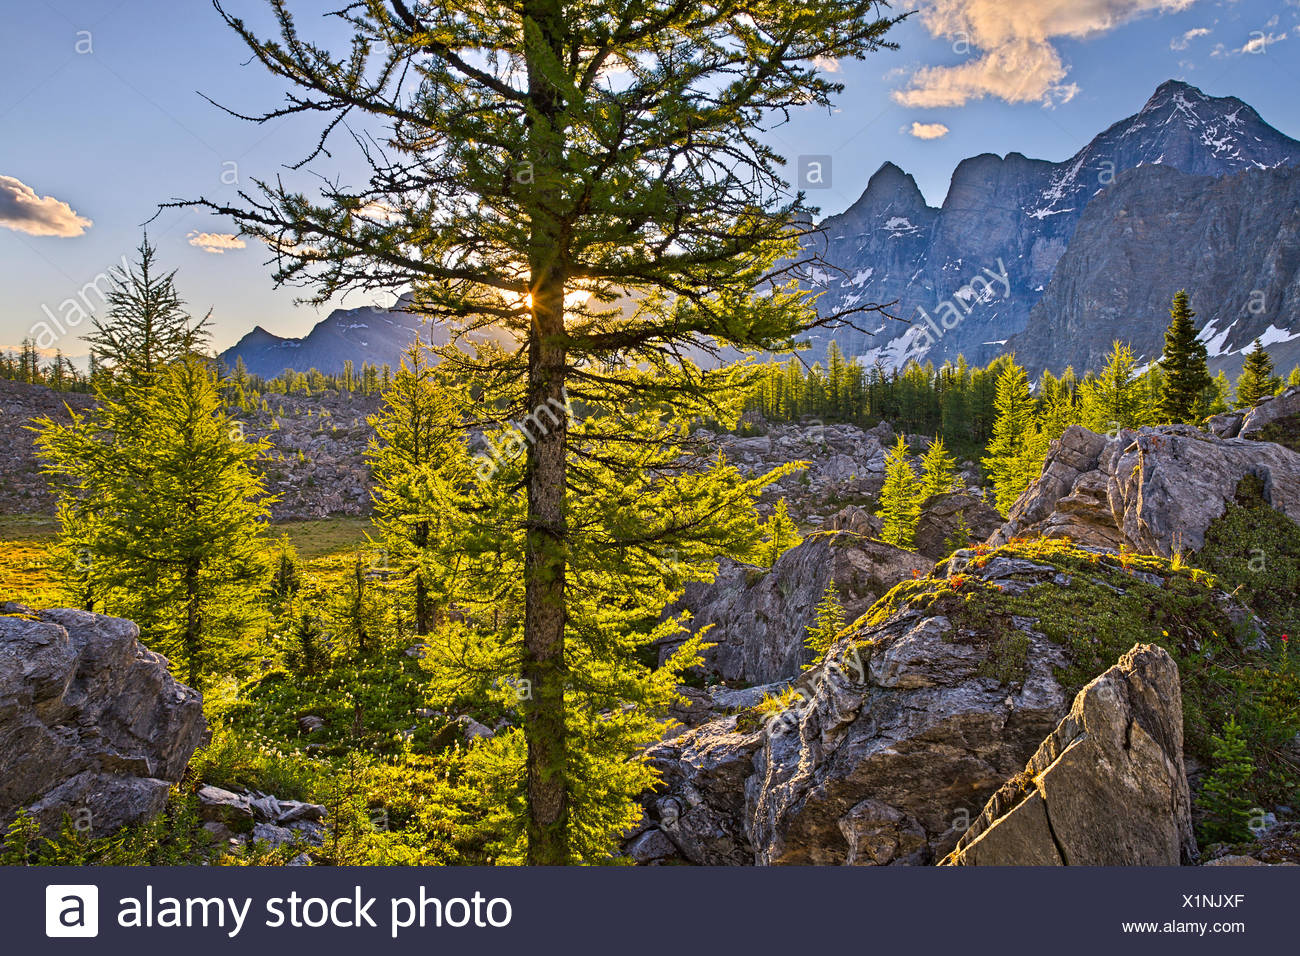 The view from Goodsir Pass over the larch forest near the boundary of Kootenay and Yoho National Parks. Kootenay National Park - Stock Image